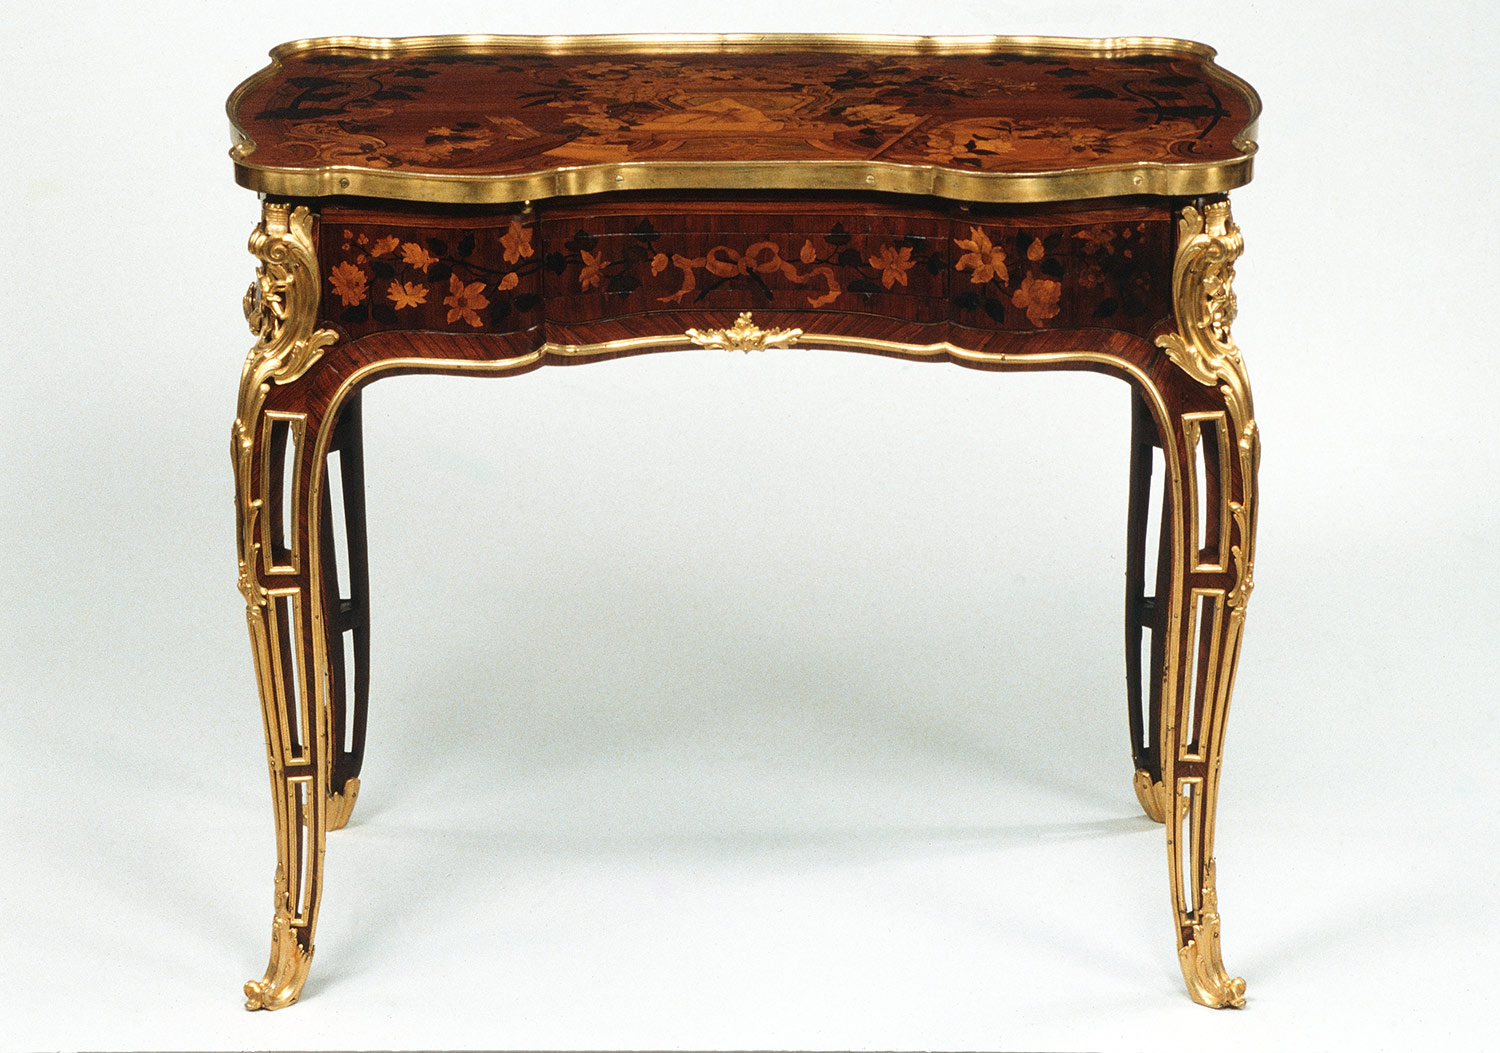 The Golden Age of French Furniture in the Eighteenth Century